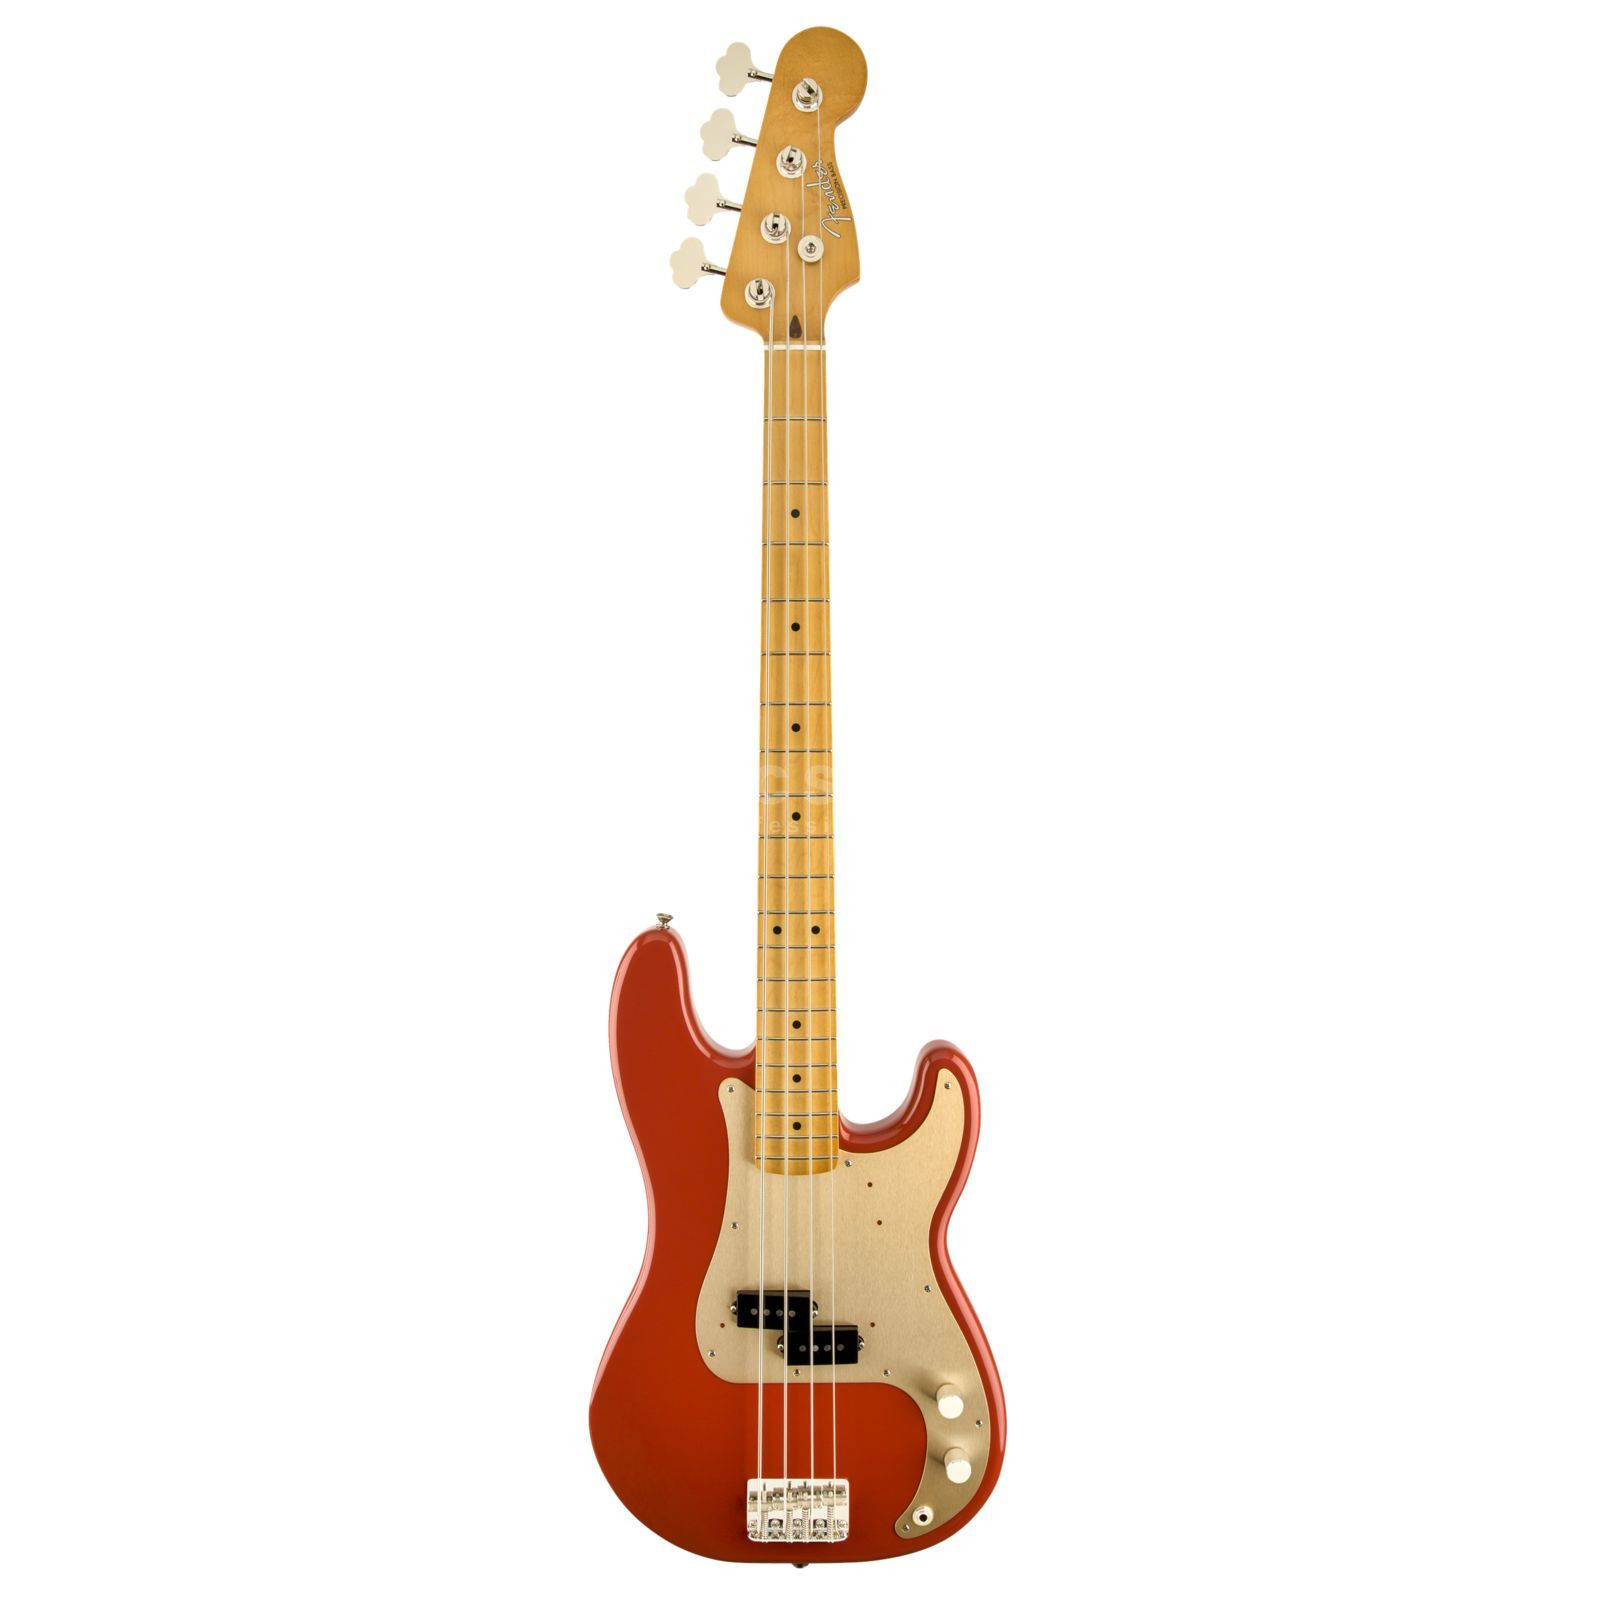 Fender Classic '50s P-bas MN FRD Fiesta rood Productafbeelding